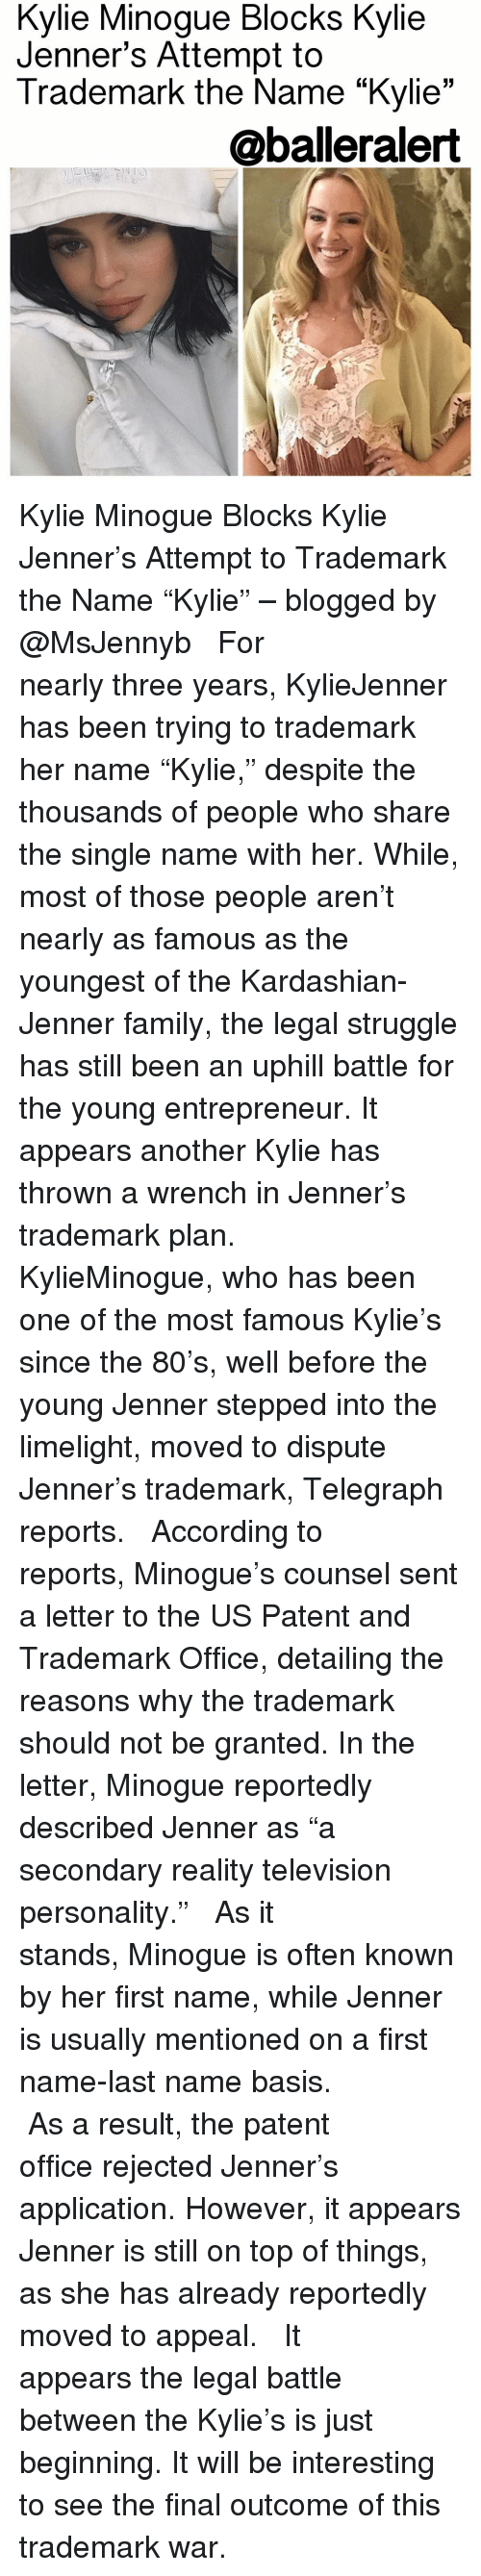 """Kylie Jenner, Memes, and Telegraph: Minogue Blocks Kylie  Minogue Attempt to  Trademark the Name """"Kylie  33  @balleralert Kylie Minogue Blocks Kylie Jenner's Attempt to Trademark the Name """"Kylie"""" – blogged by @MsJennyb ⠀⠀⠀⠀⠀⠀⠀ ⠀⠀⠀⠀⠀⠀⠀ For nearly three years, KylieJenner has been trying to trademark her name """"Kylie,"""" despite the thousands of people who share the single name with her. While, most of those people aren't nearly as famous as the youngest of the Kardashian-Jenner family, the legal struggle has still been an uphill battle for the young entrepreneur. It appears another Kylie has thrown a wrench in Jenner's trademark plan. ⠀⠀⠀⠀⠀⠀⠀ ⠀⠀⠀⠀⠀⠀⠀ KylieMinogue, who has been one of the most famous Kylie's since the 80's, well before the young Jenner stepped into the limelight, moved to dispute Jenner's trademark, Telegraph reports. ⠀⠀⠀⠀⠀⠀⠀ ⠀⠀⠀⠀⠀⠀⠀ According to reports, Minogue's counsel sent a letter to the US Patent and Trademark Office, detailing the reasons why the trademark should not be granted. In the letter, Minogue reportedly described Jenner as """"a secondary reality television personality."""" ⠀⠀⠀⠀⠀⠀⠀ ⠀⠀⠀⠀⠀⠀⠀ As it stands, Minogue is often known by her first name, while Jenner is usually mentioned on a first name-last name basis. ⠀⠀⠀⠀⠀⠀⠀ ⠀⠀⠀⠀⠀⠀⠀ As a result, the patent office rejected Jenner's application. However, it appears Jenner is still on top of things, as she has already reportedly moved to appeal. ⠀⠀⠀⠀⠀⠀⠀ ⠀⠀⠀⠀⠀⠀⠀ It appears the legal battle between the Kylie's is just beginning. It will be interesting to see the final outcome of this trademark war."""